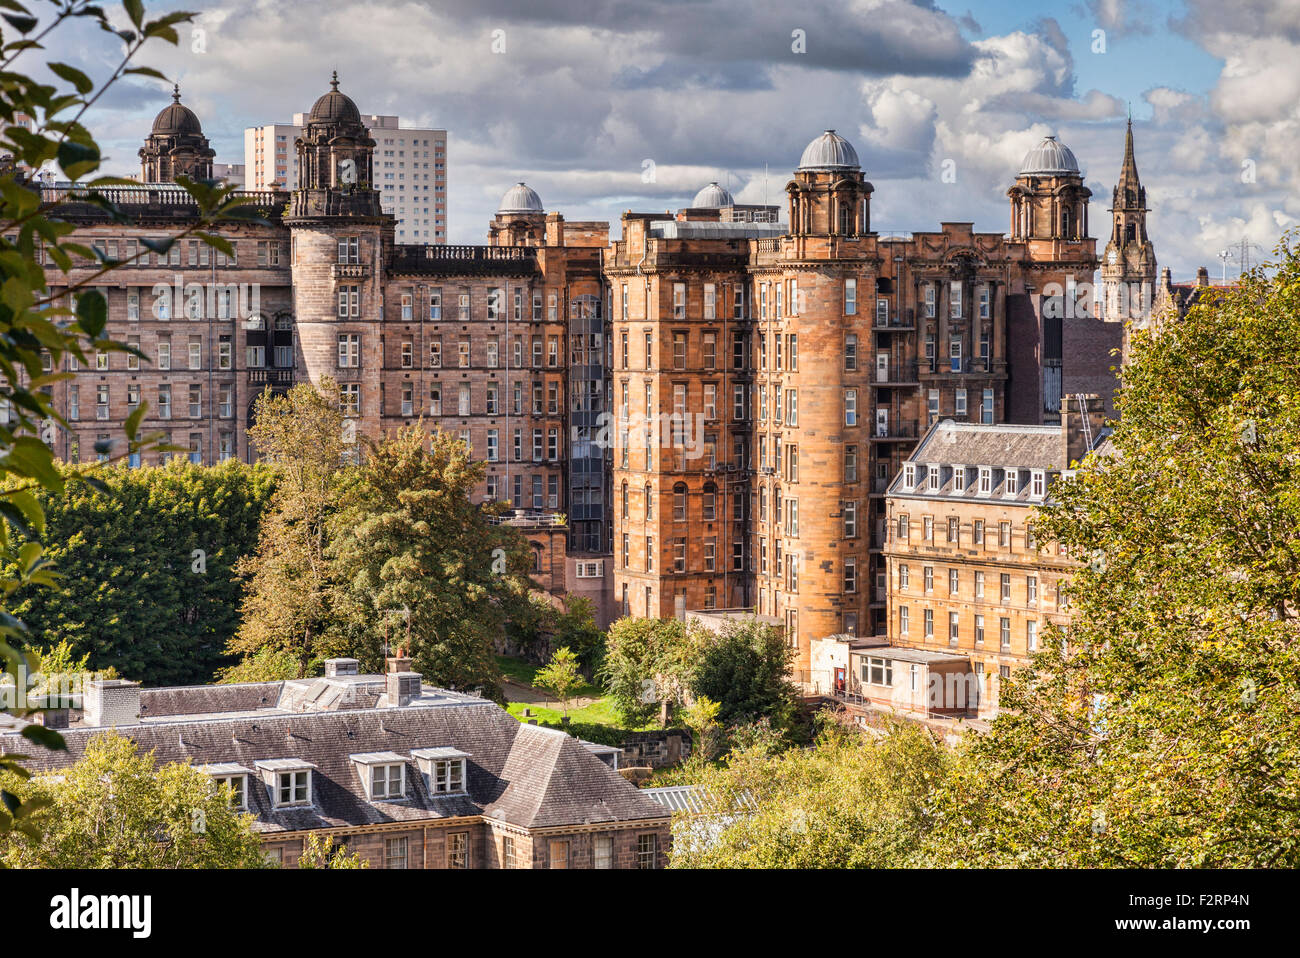 Glasgow Royal Infirmary, designed by Robert and James Adam, Glasgow, Scotland, UK. - Stock Image